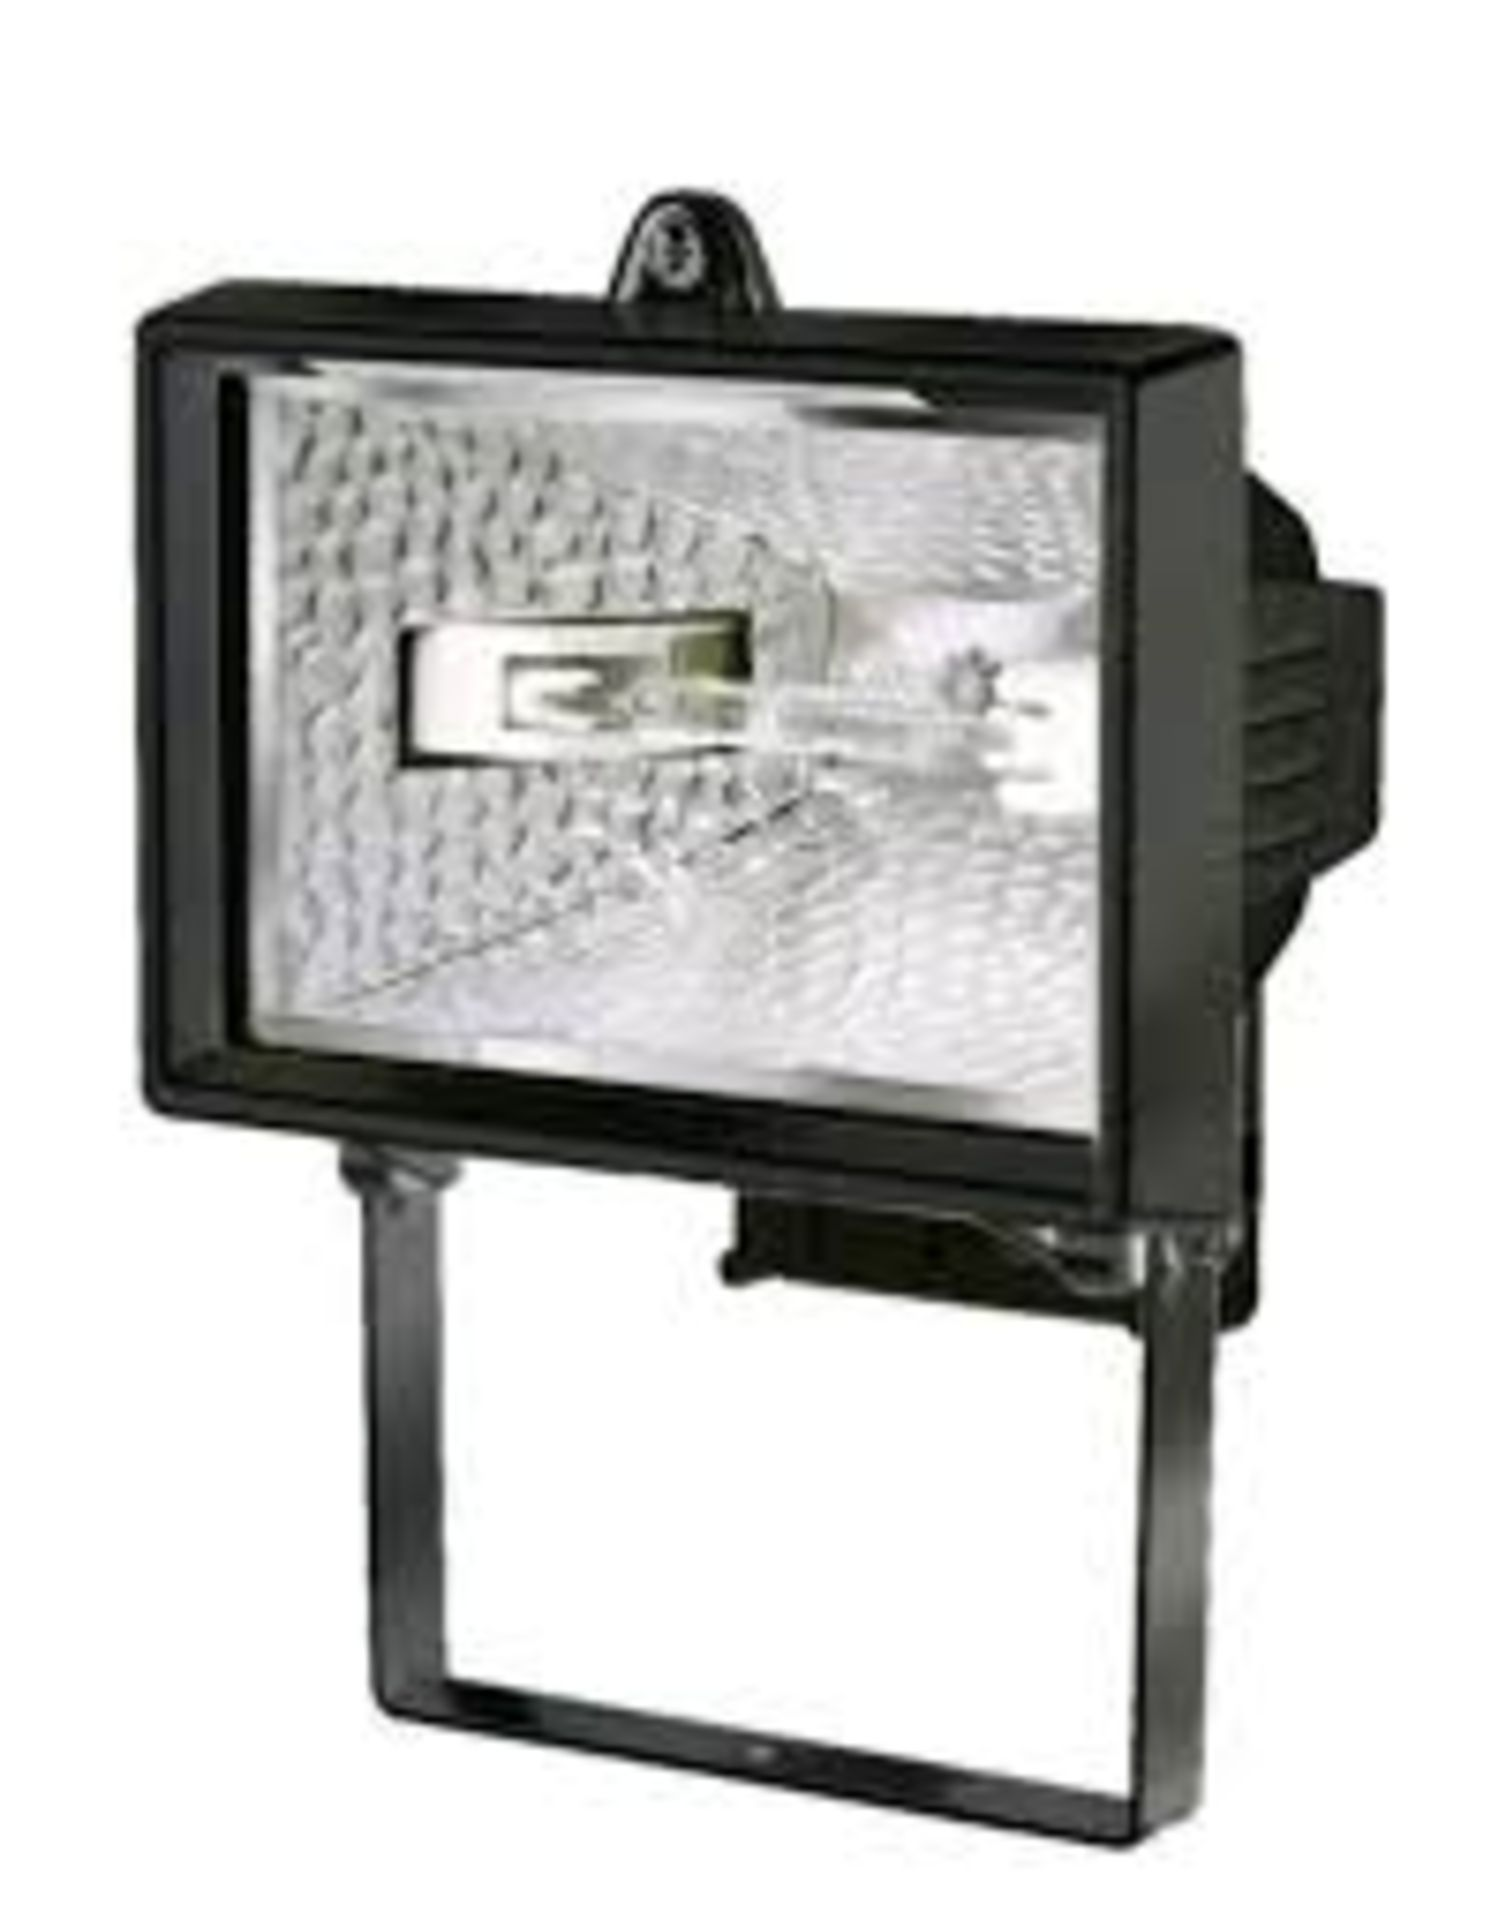 Lot 43052 - V Brand New Weather Proof 120W Floodlight